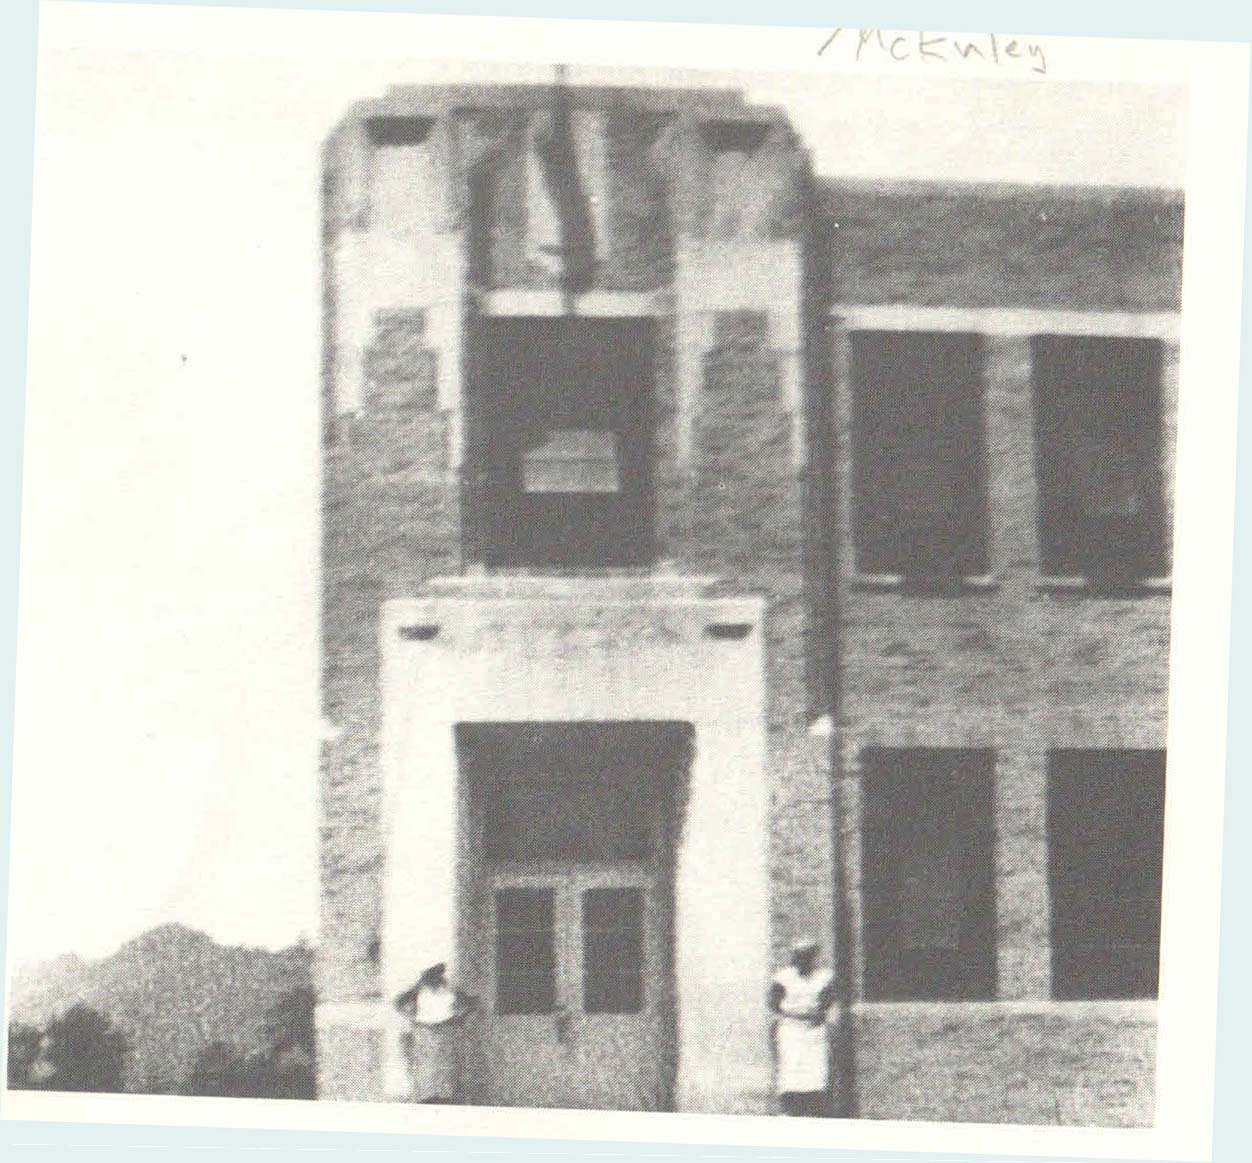 First portion of the school in mid 1930s. Note the 2 students.